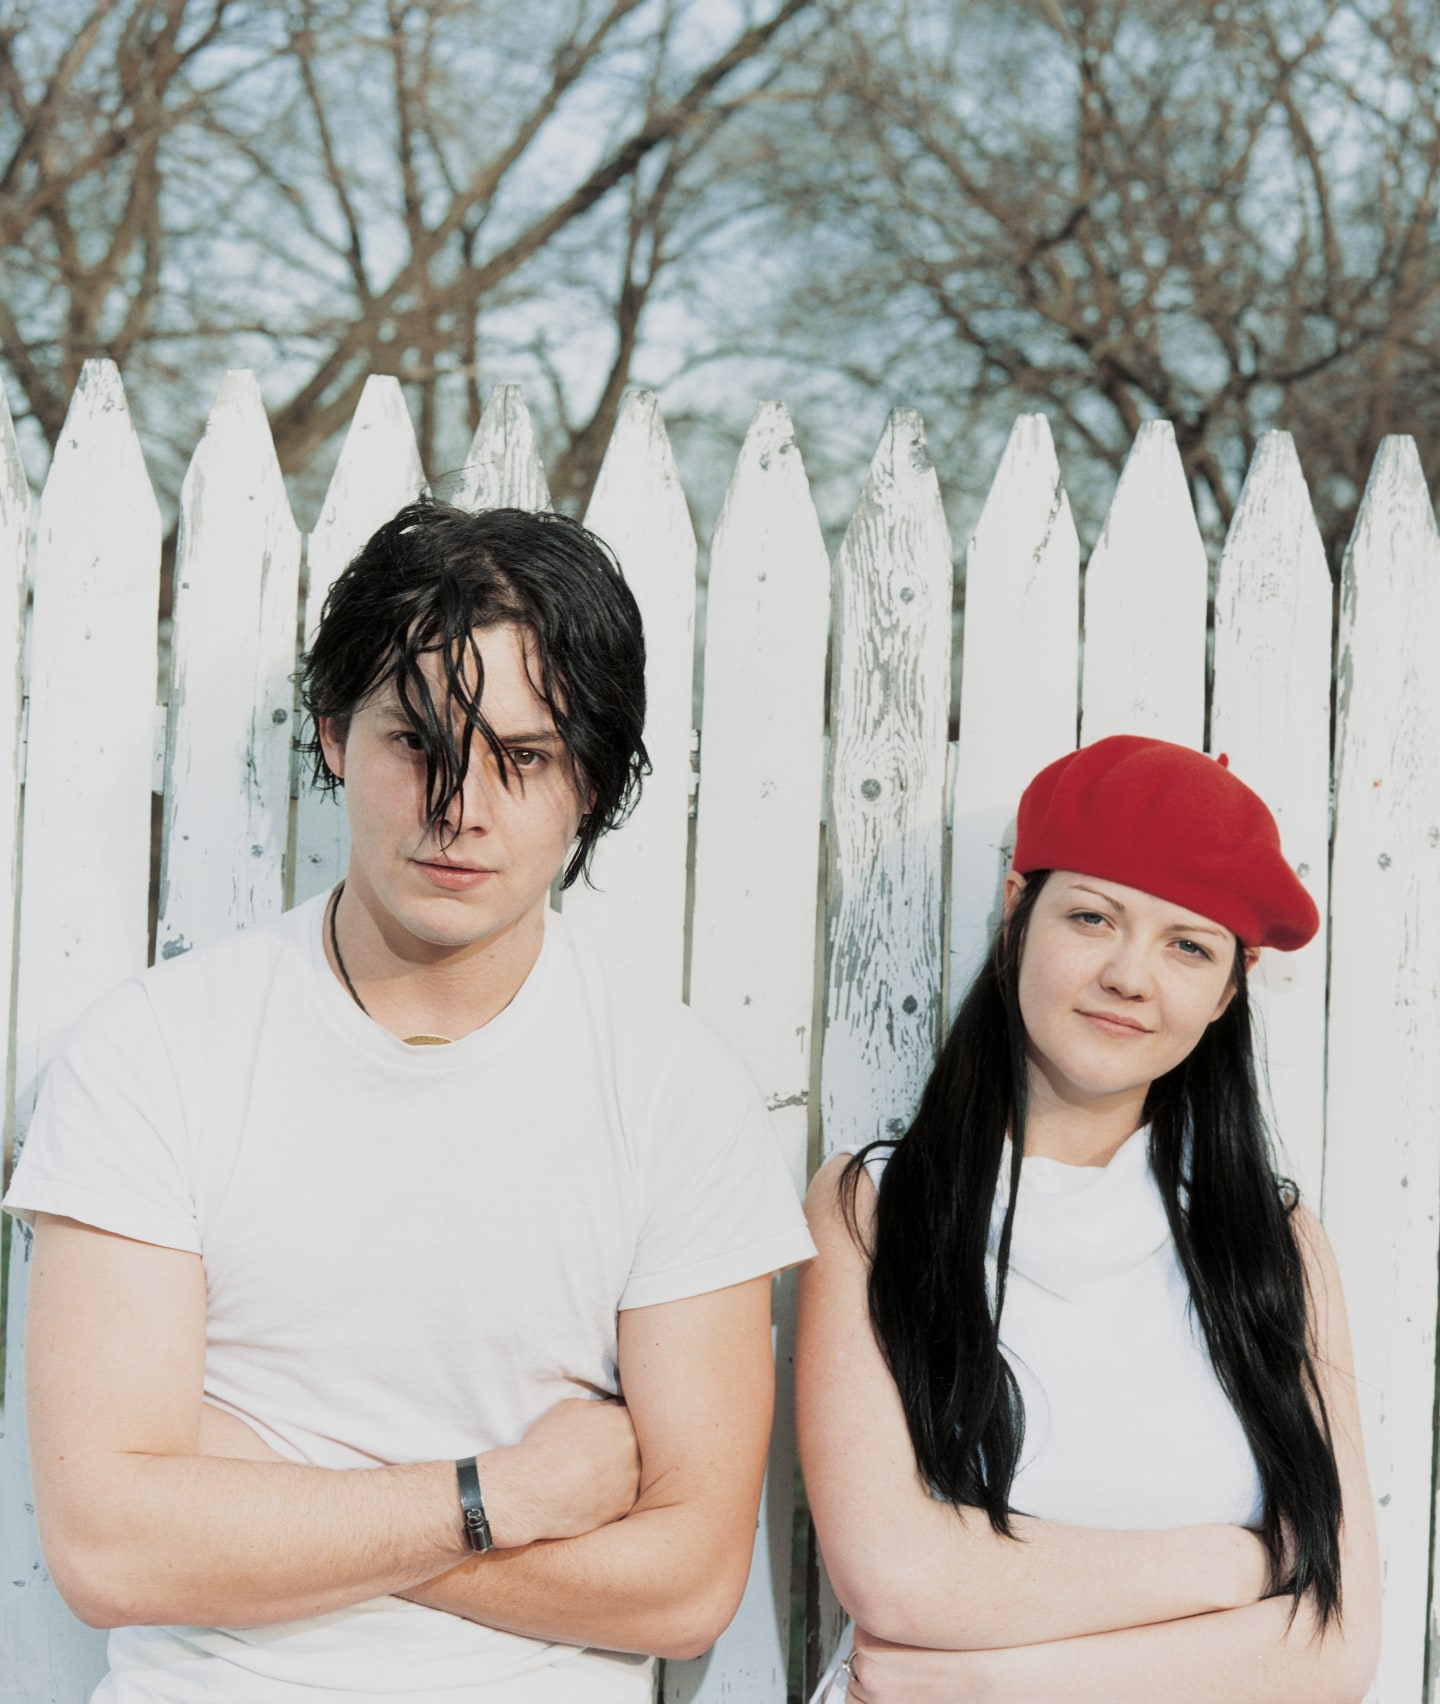 This 2002 White Stripes Cover Story Captures Rock's Obsession With Authenticity